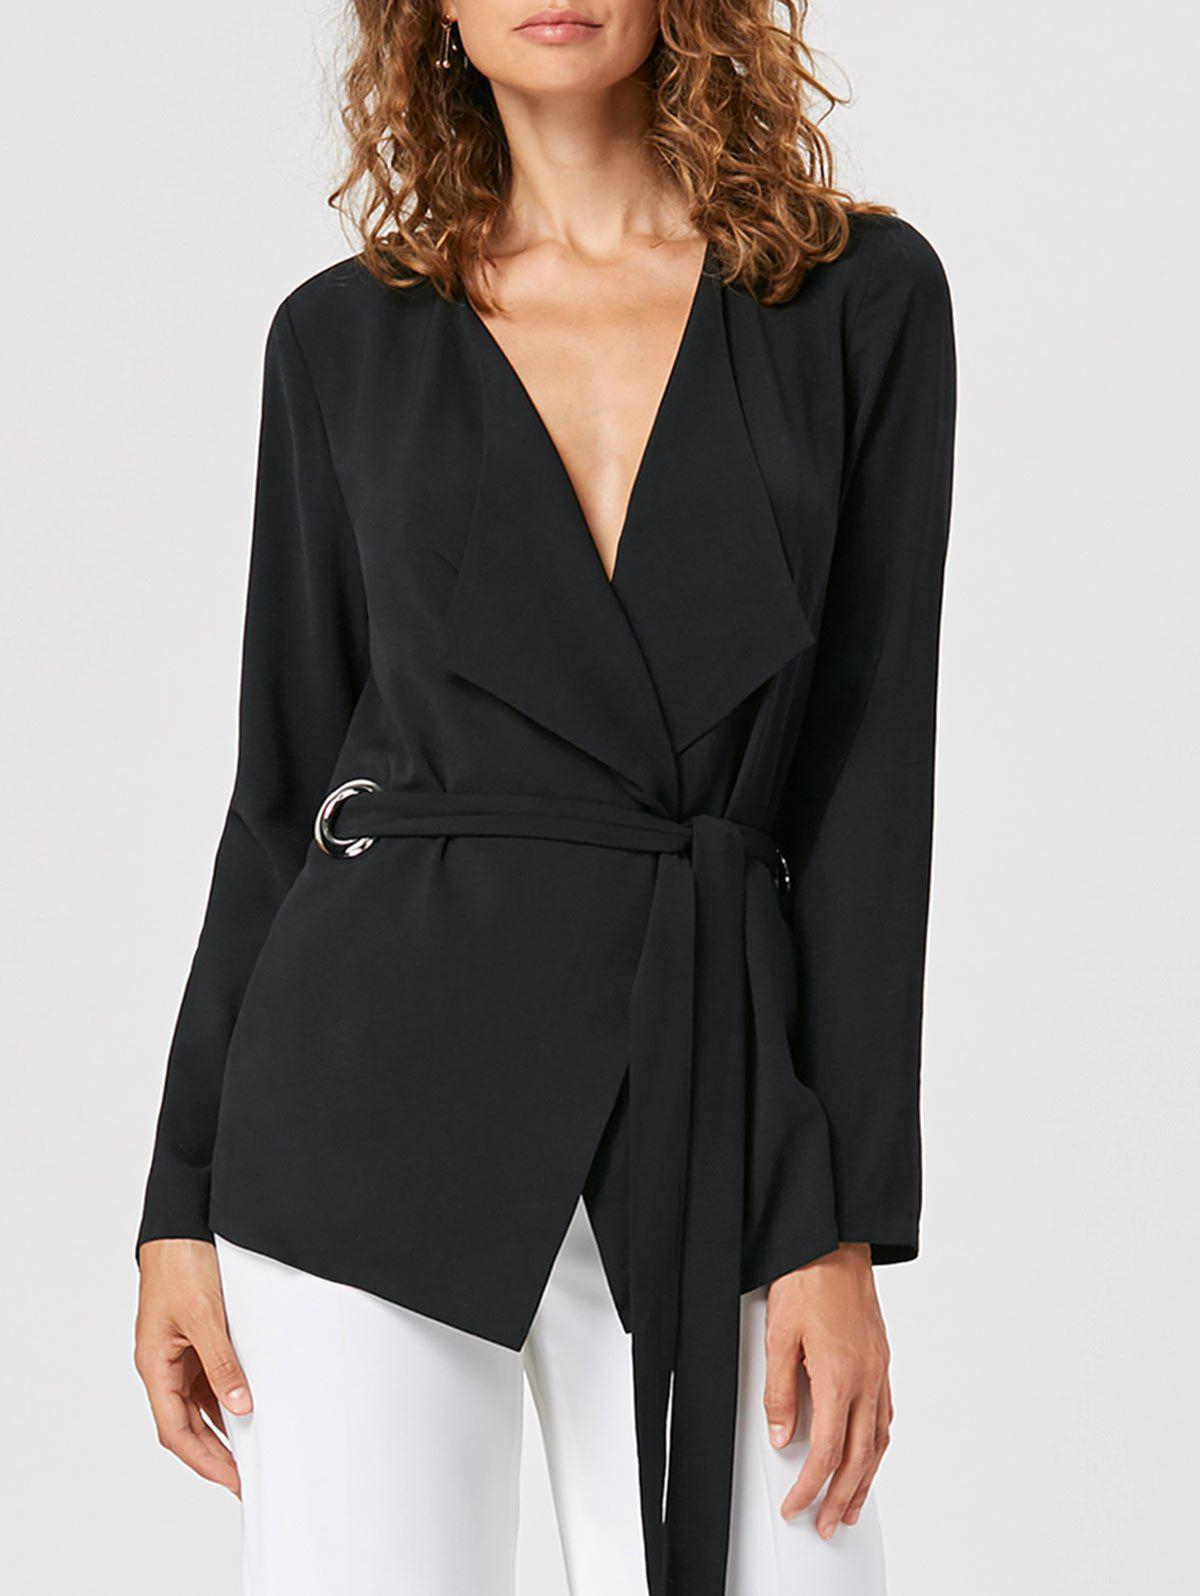 Waterfall Blazer with Tie Belt - BLACK XL